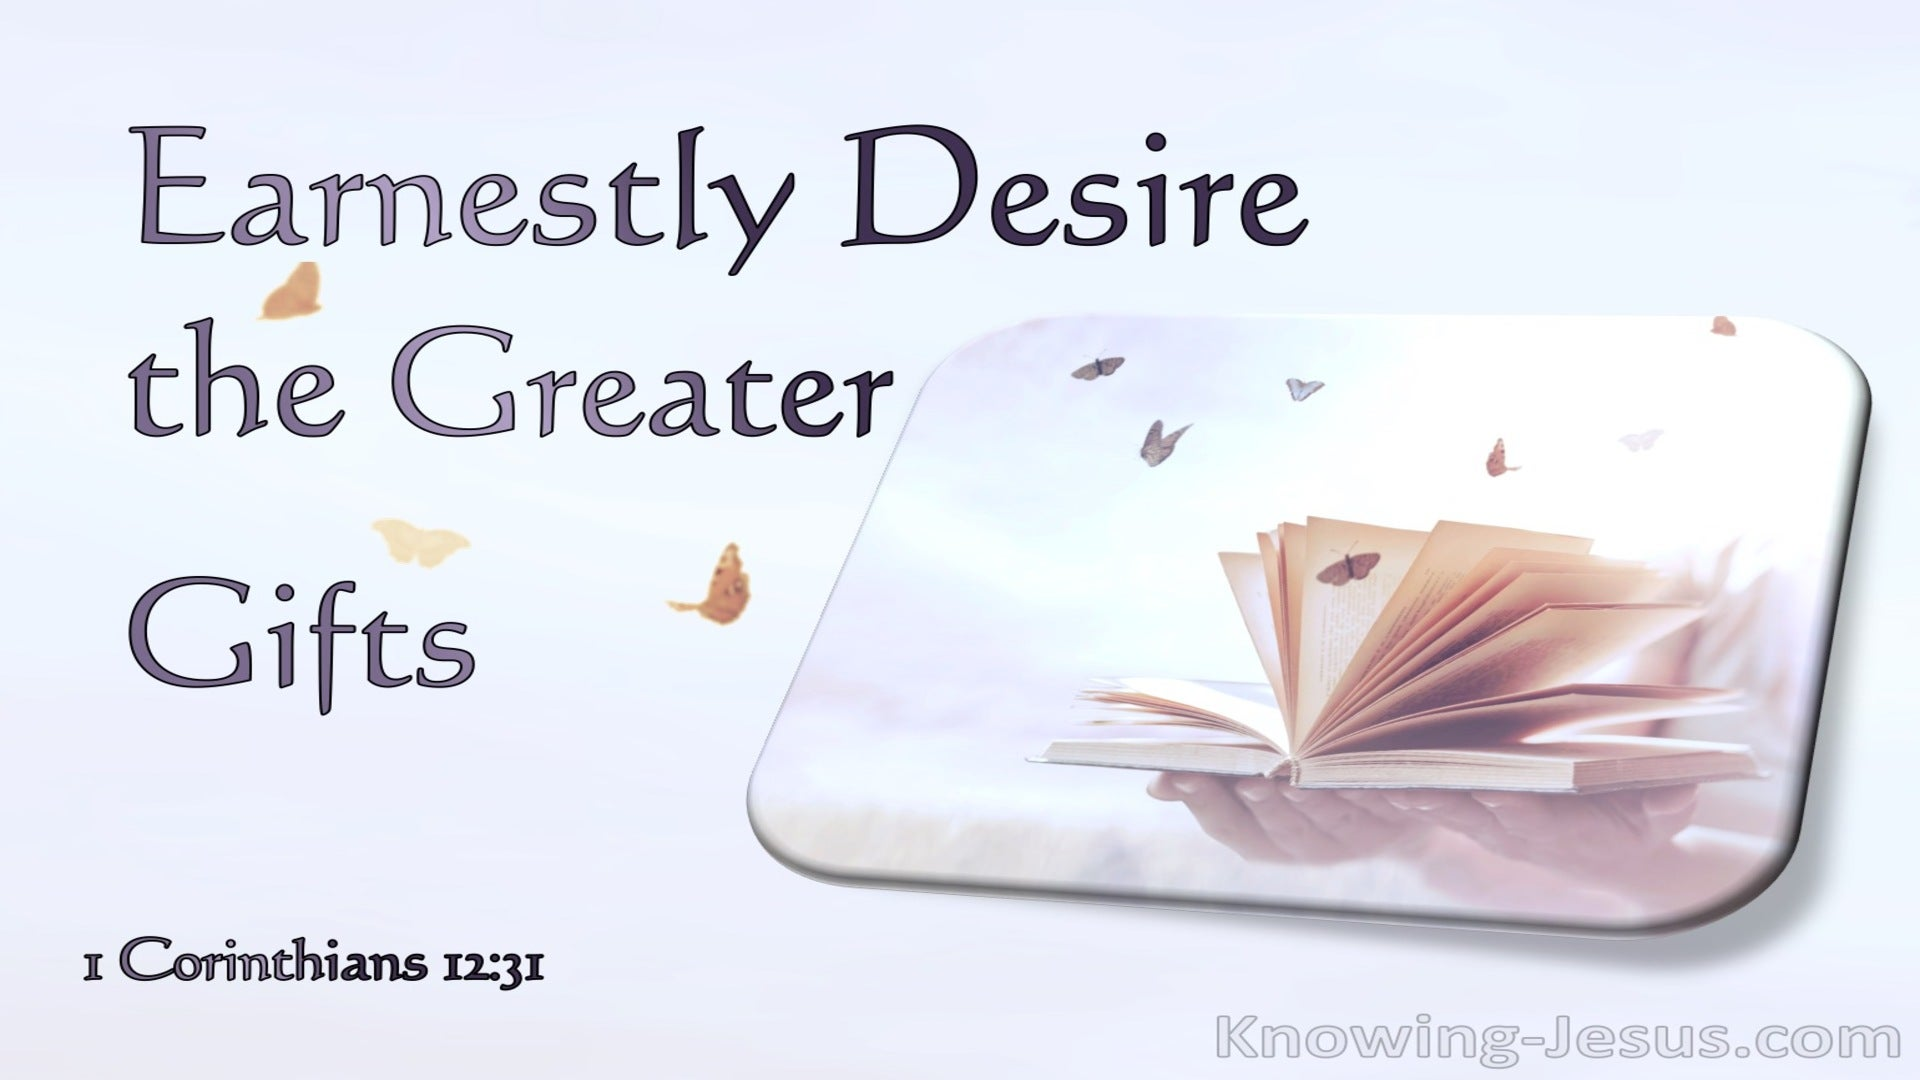 1 Corinthians 12:31 Earnestly Desire The Greater Gifts (purple)